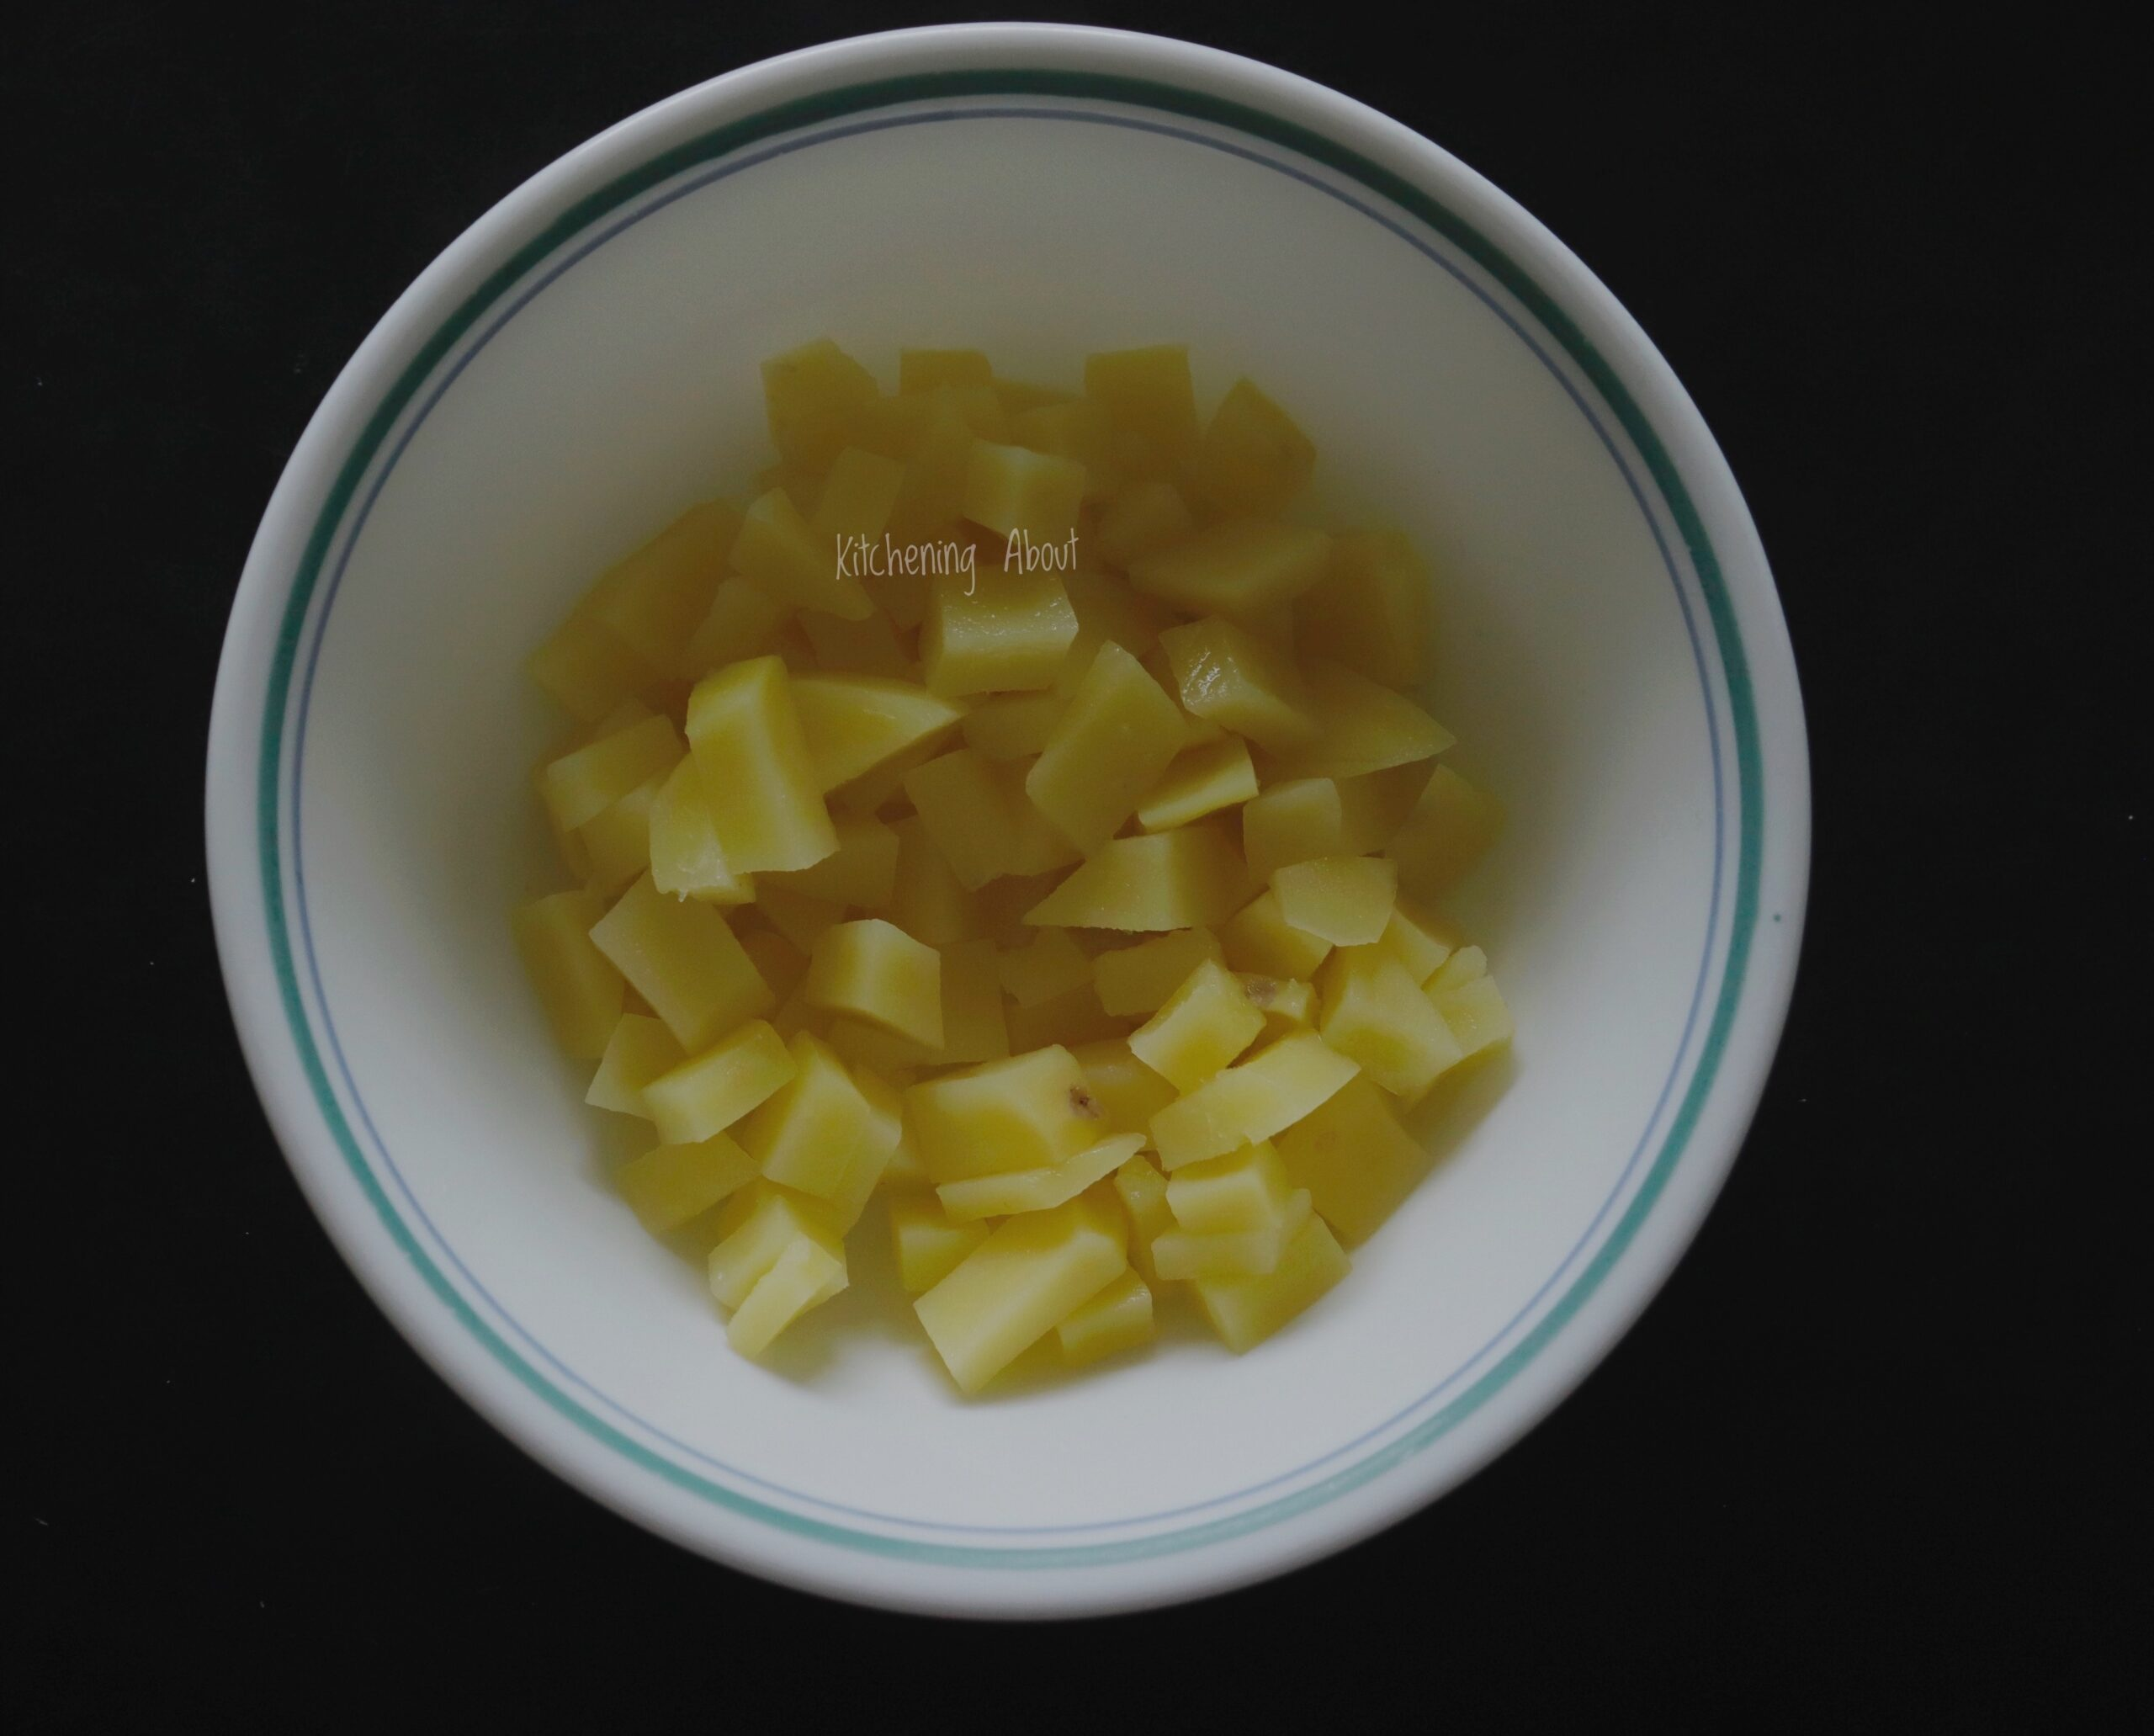 Boiled and cubed potatoes